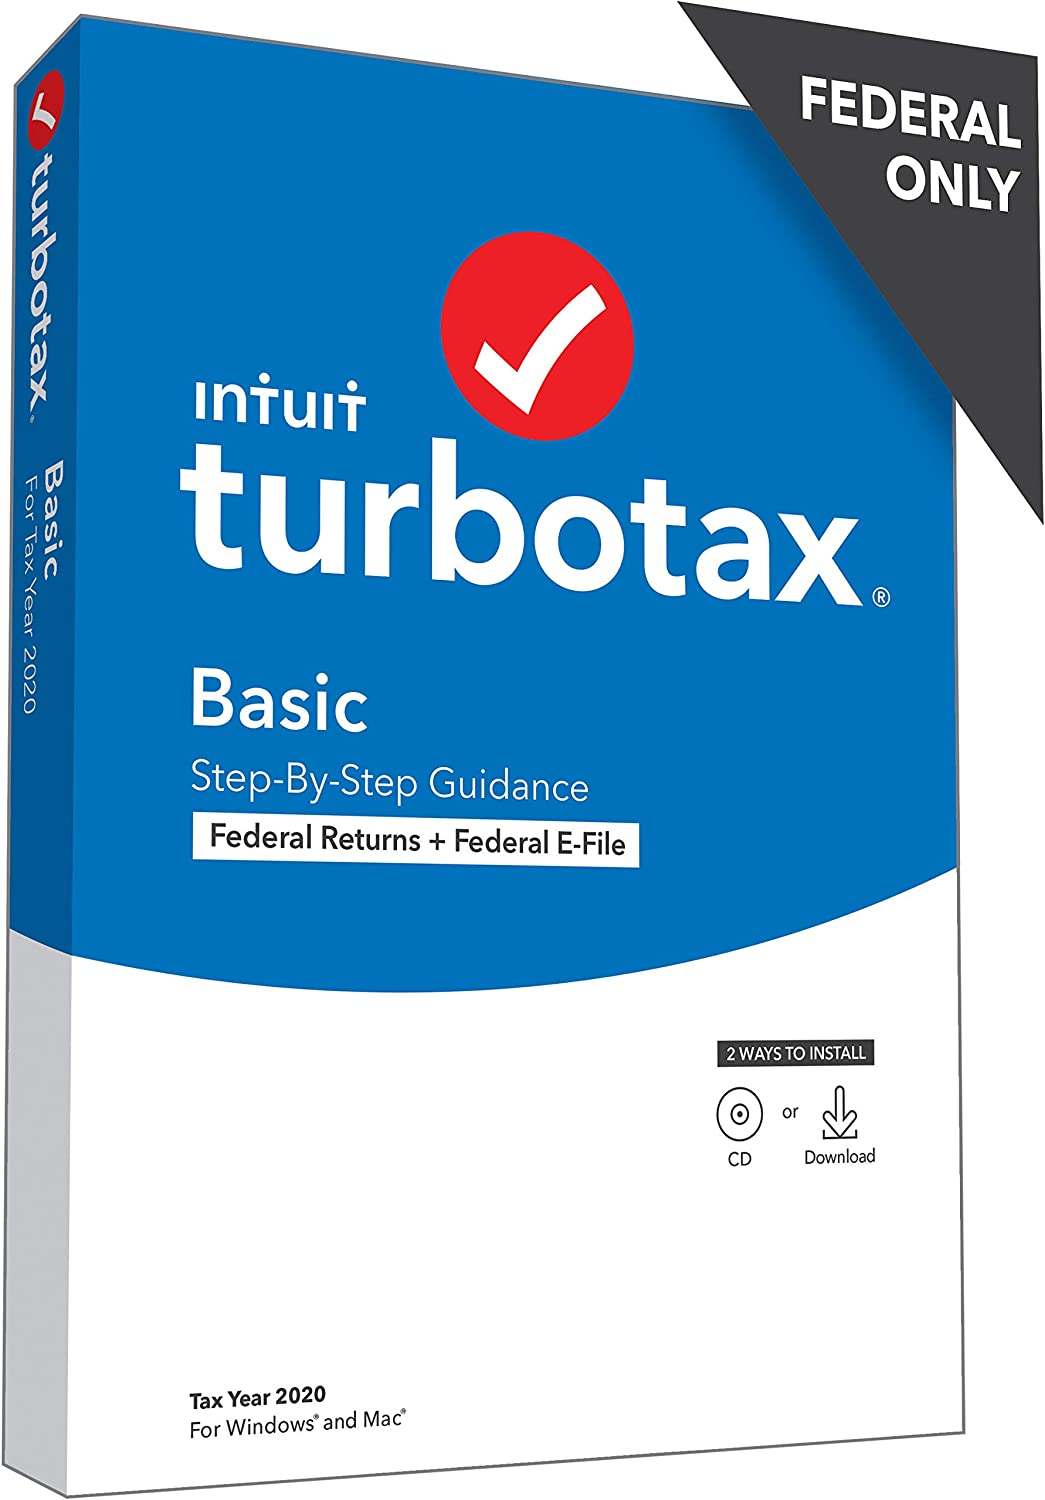 TurboTax Basic 2020 Discount Coupon Code